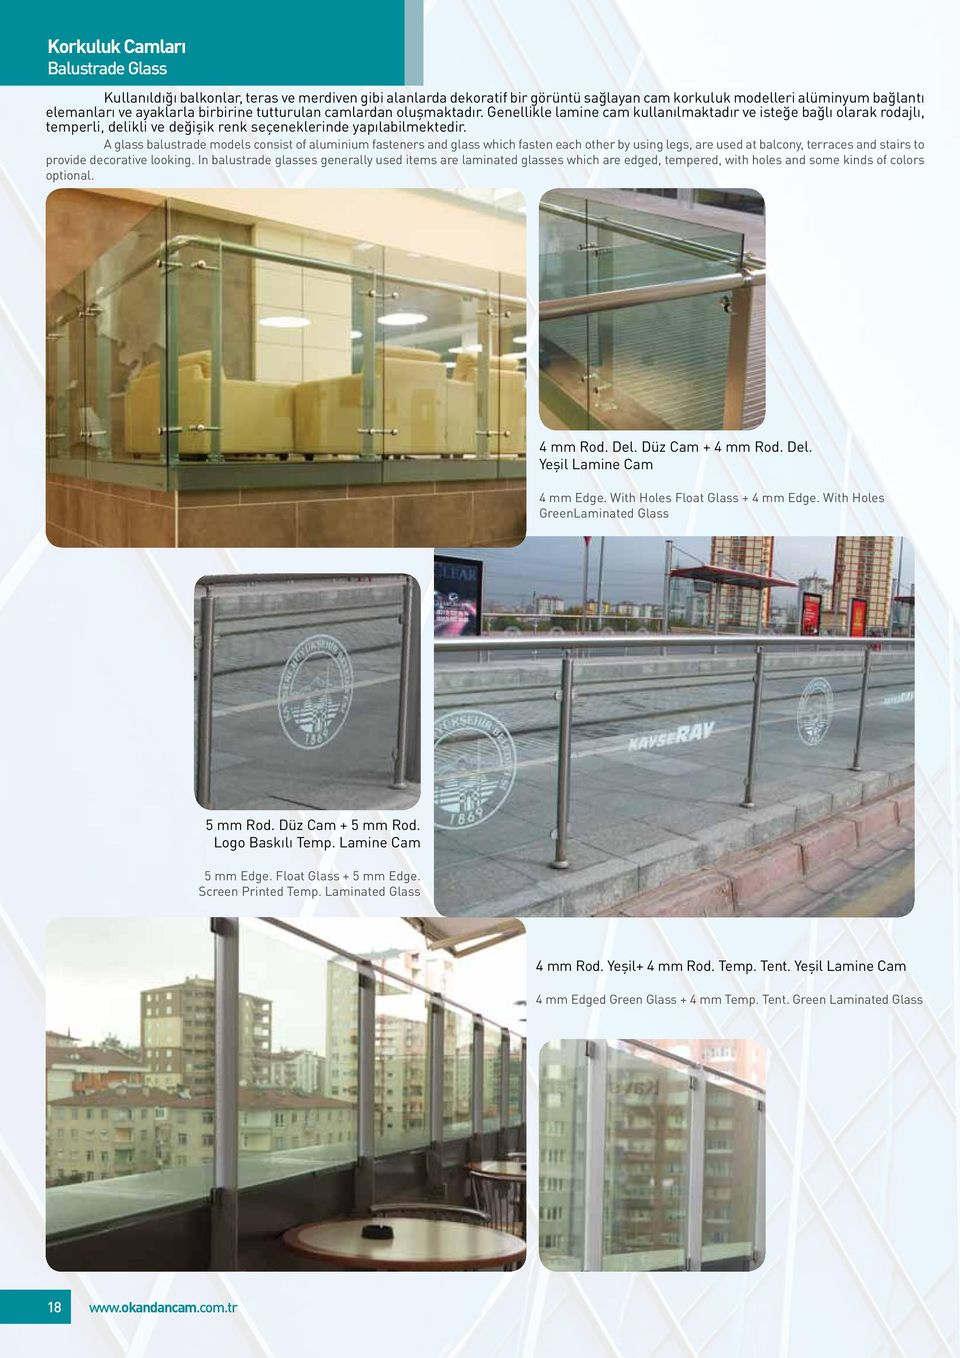 A glass balustrade models consist of aluminium fasteners and glass which fasten each other by using legs, are used at balcony, terraces and stairs to provide decorative looking.